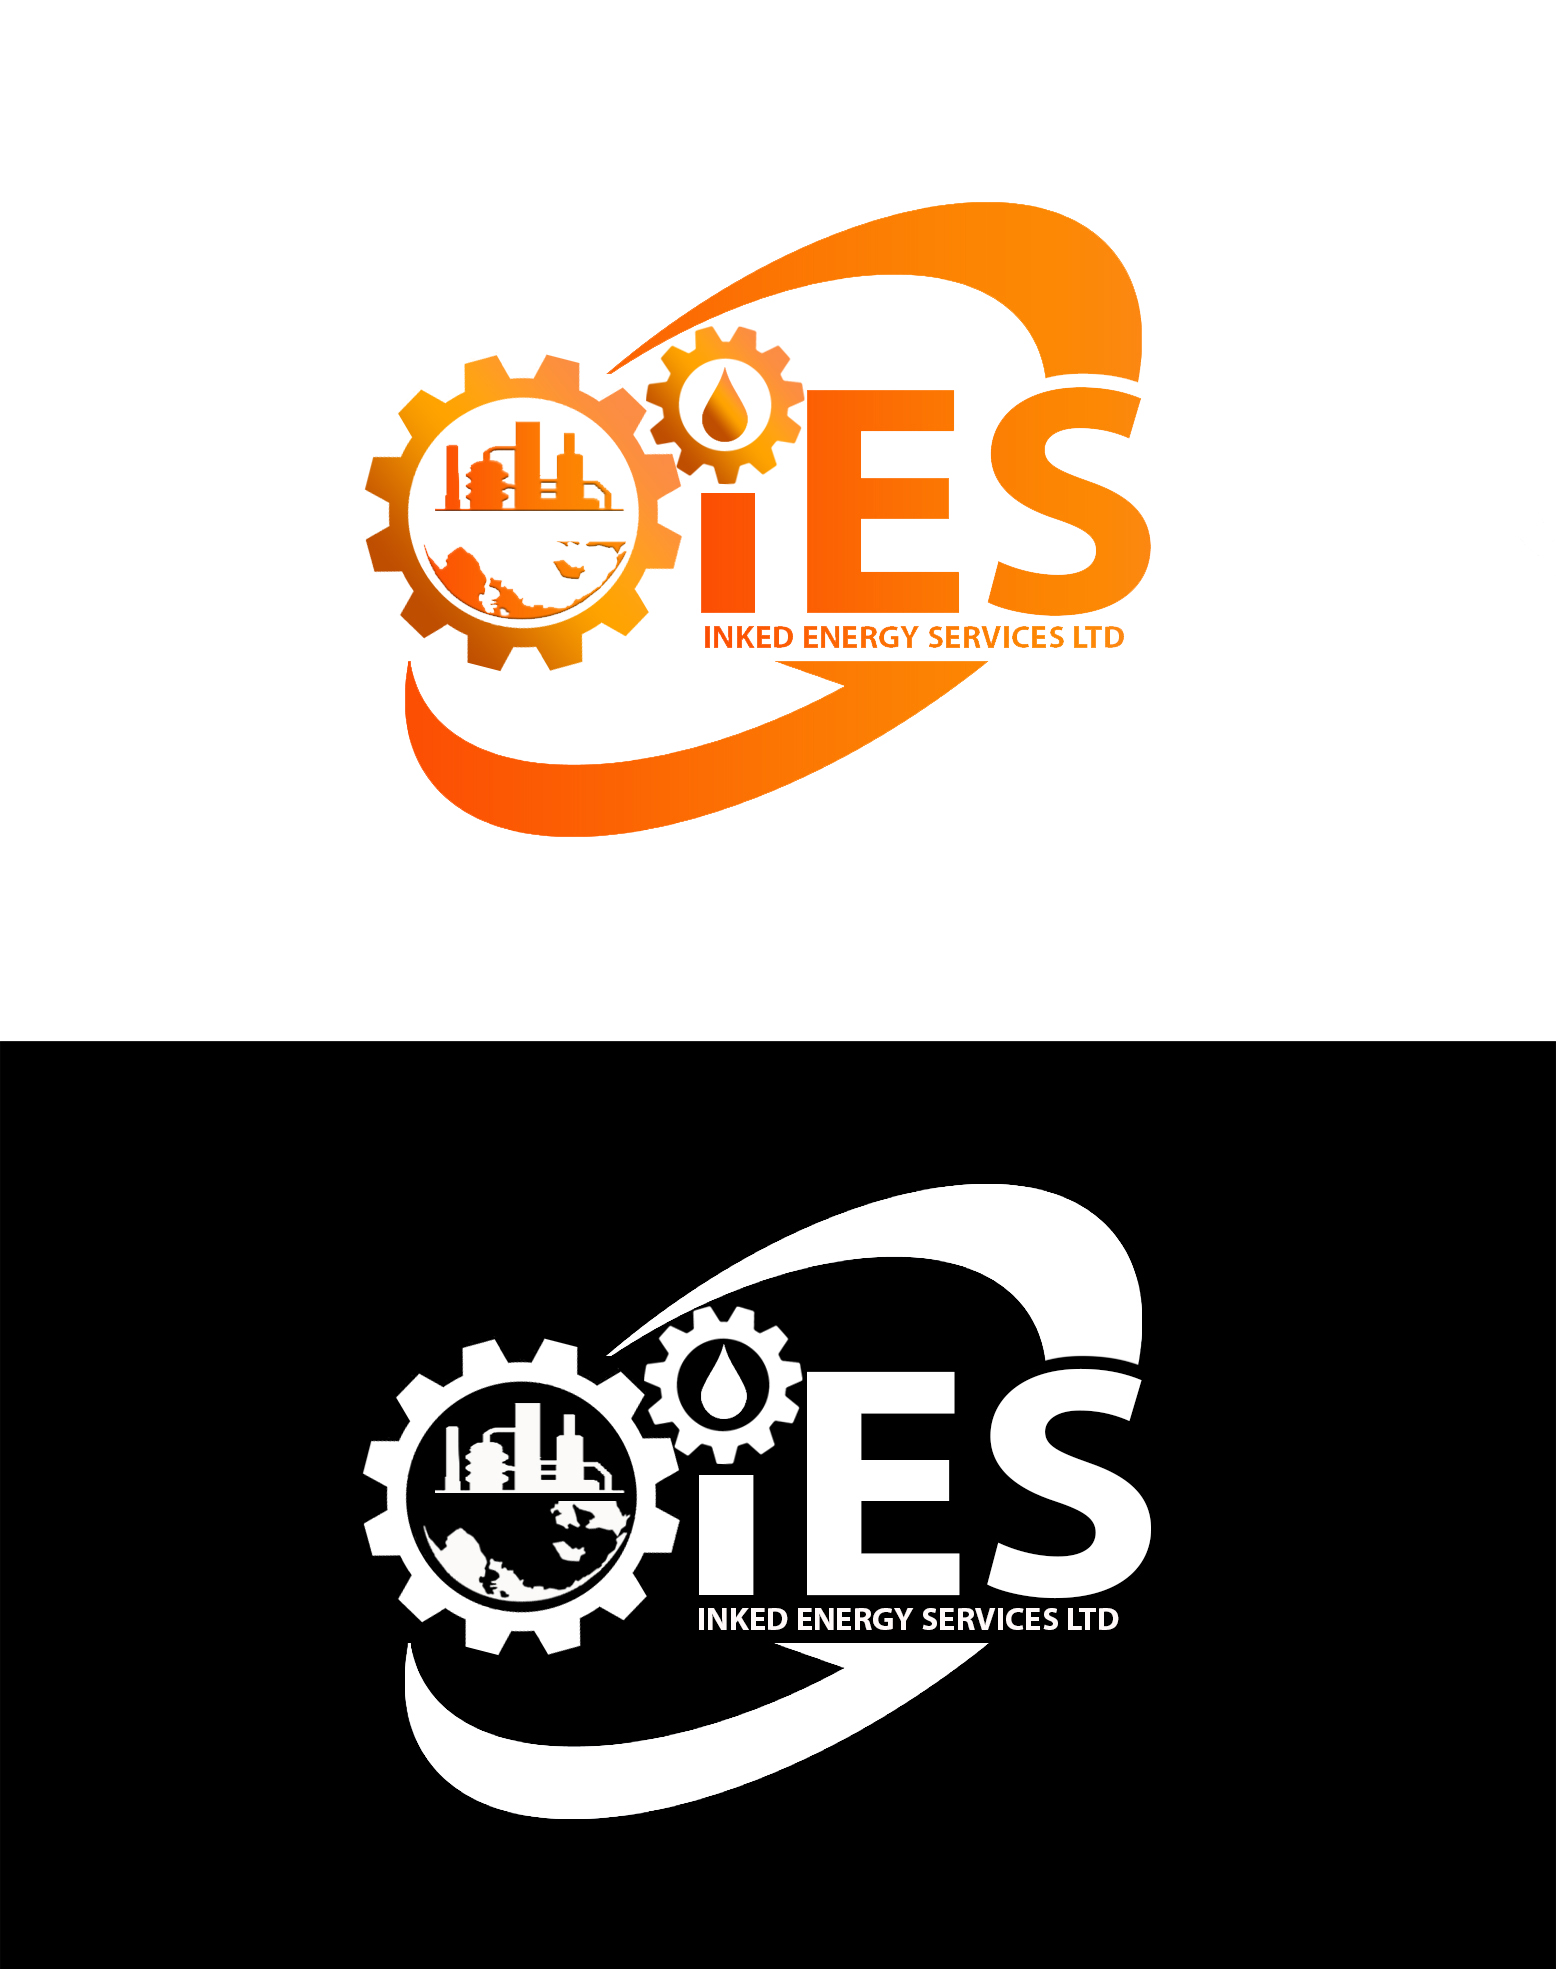 Logo Design by JSDESIGNGROUP - Entry No. 126 in the Logo Design Contest Creative Logo Design for INKED ENERGY SERVICES LTD.